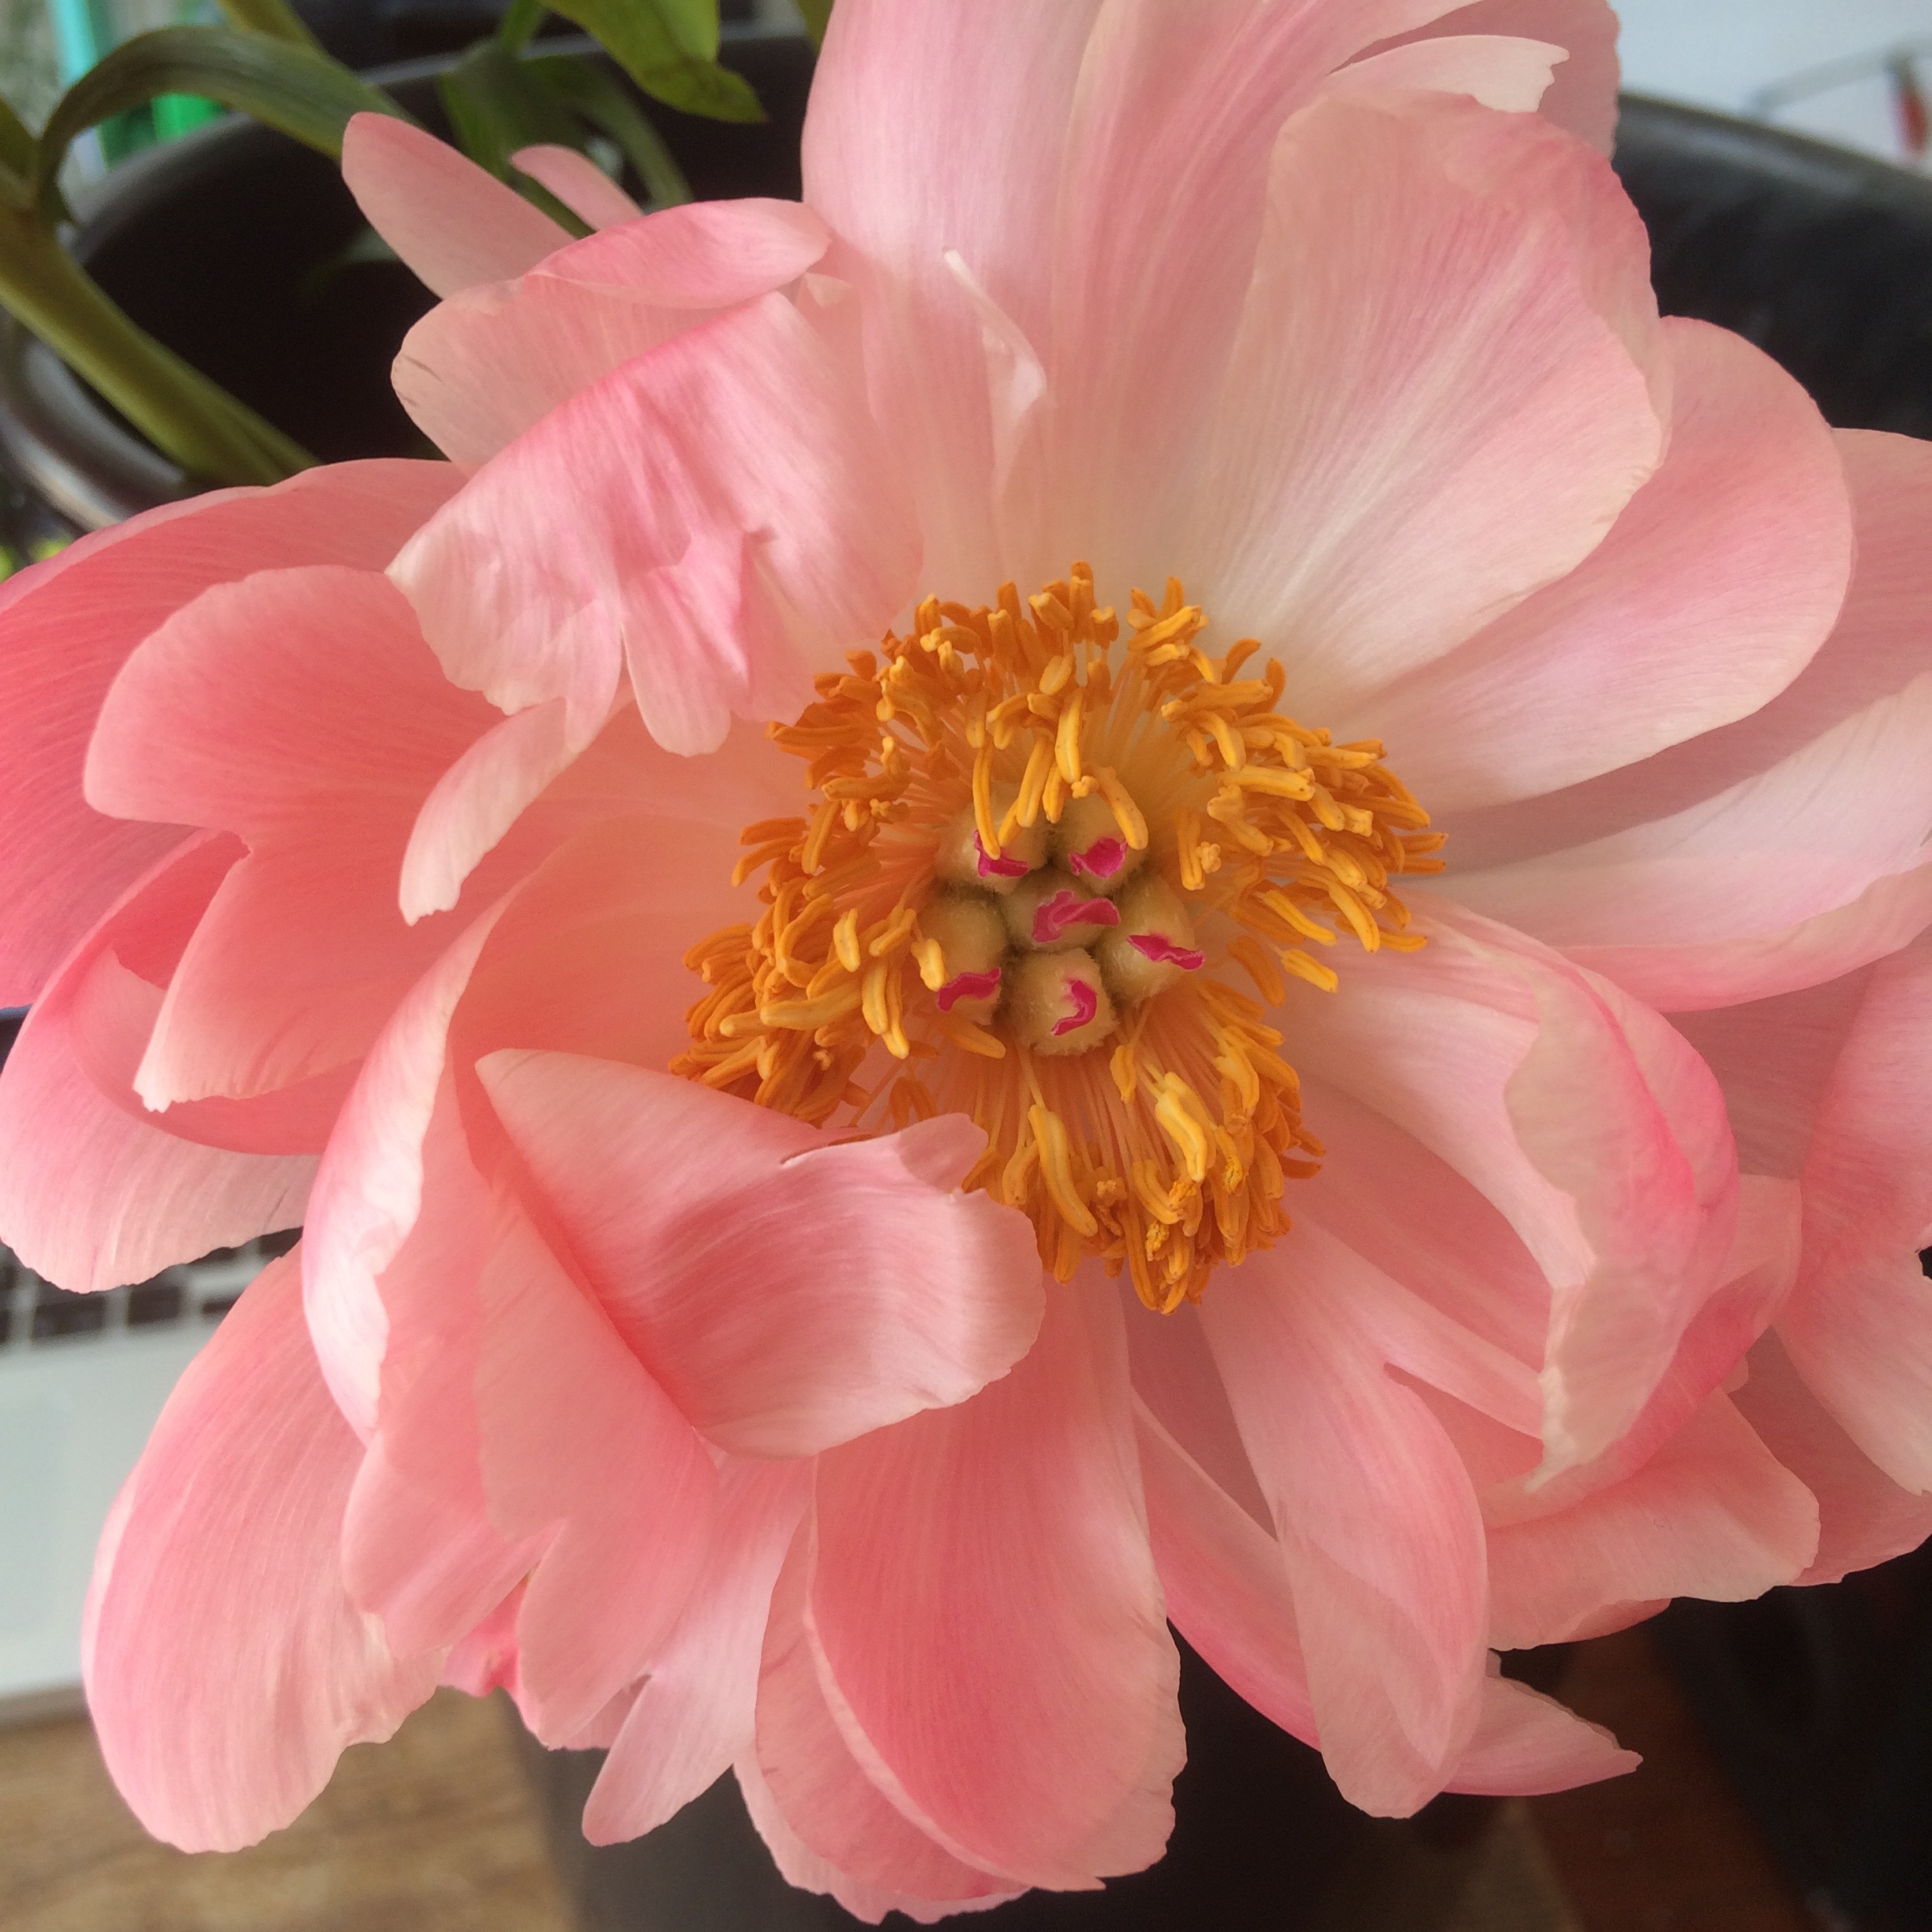 coral peonies turning into lighter pink shade